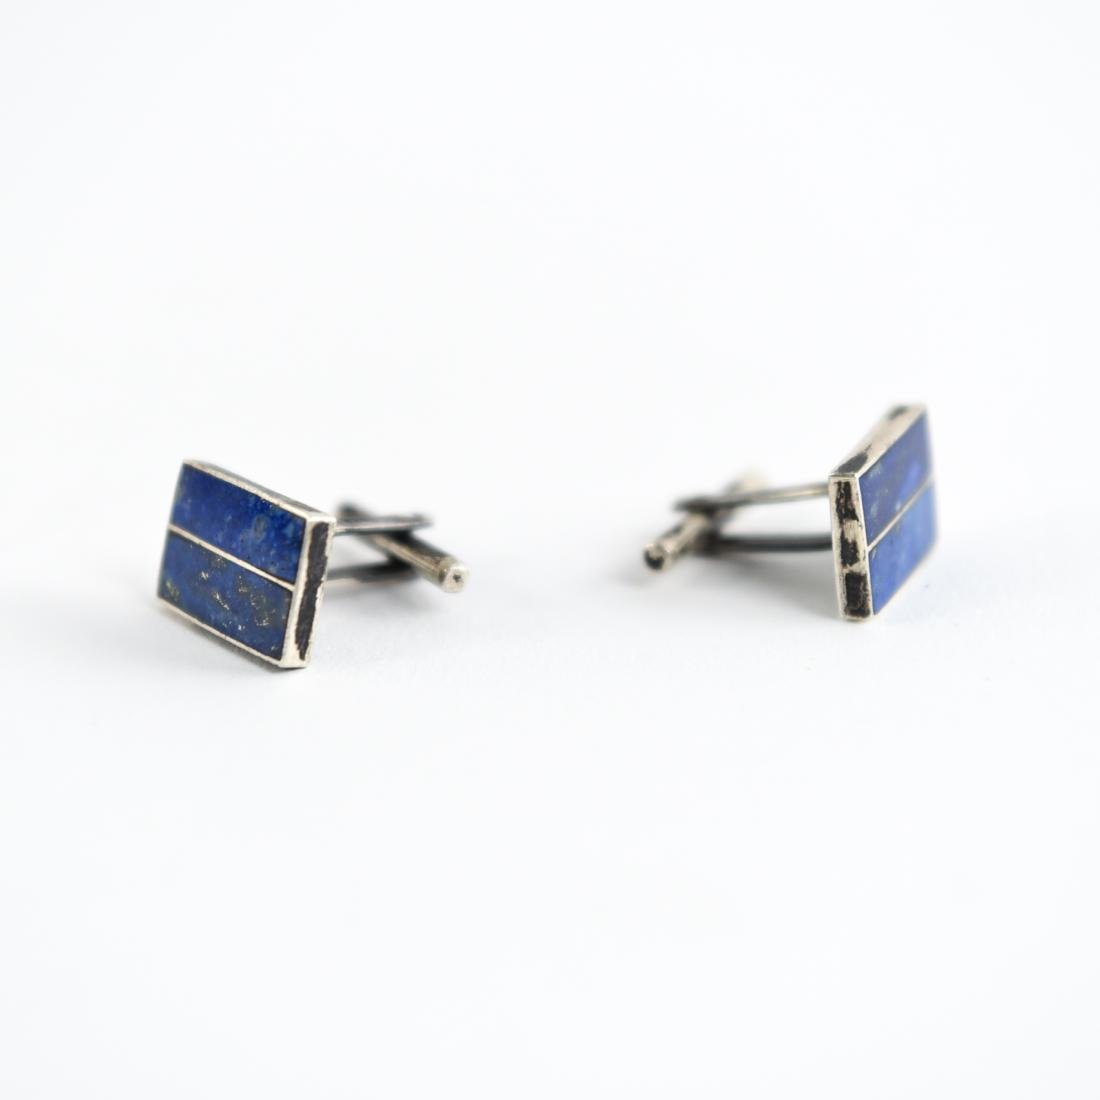 PAIR OF STERLING AND LAPIS CUFFLINKS - 3